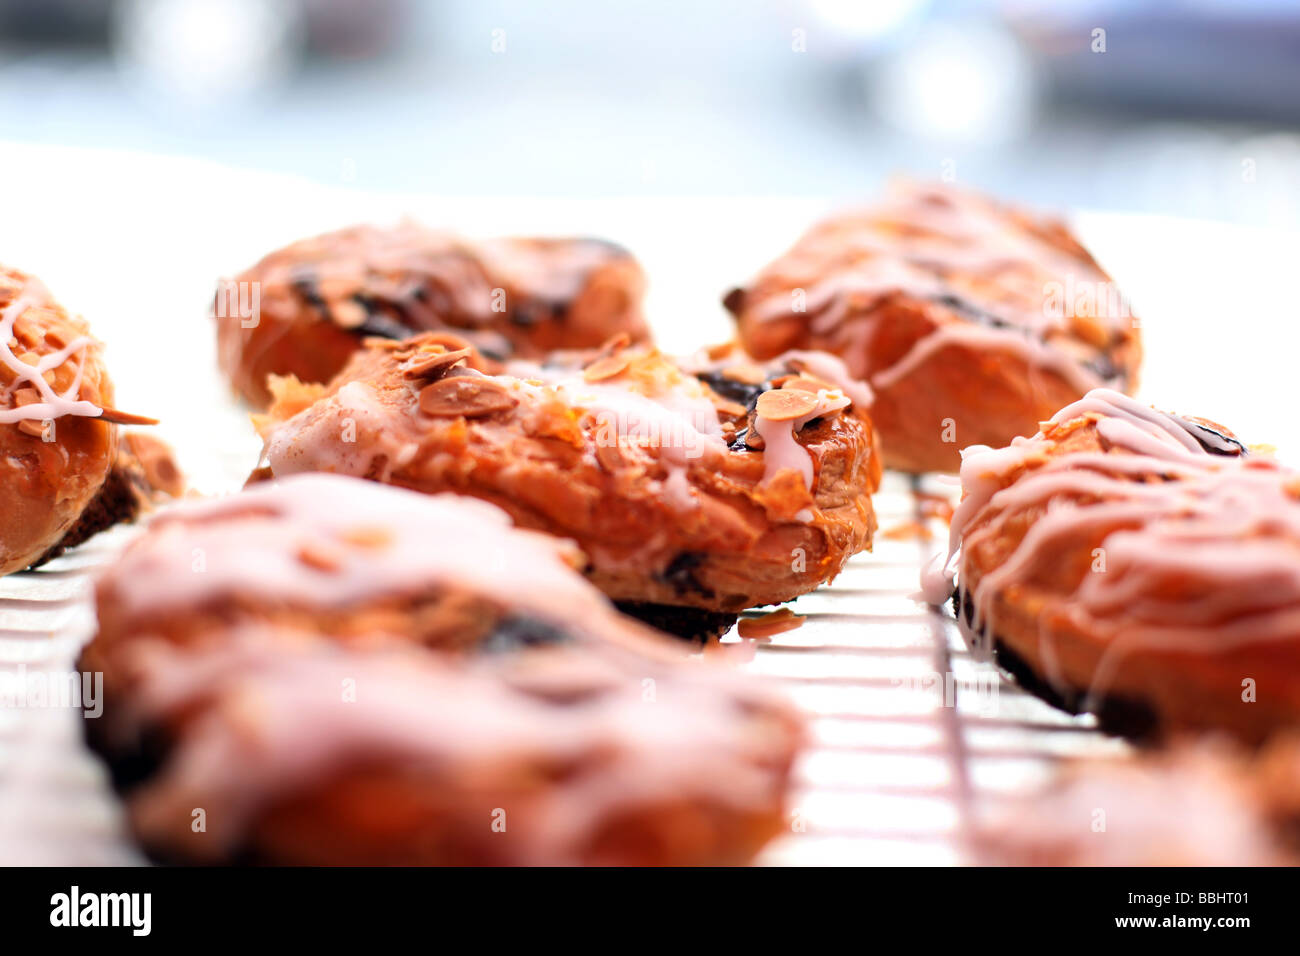 Pastries in the Maison Bertaux patisserie in Greek Street Soho London England - Stock Image